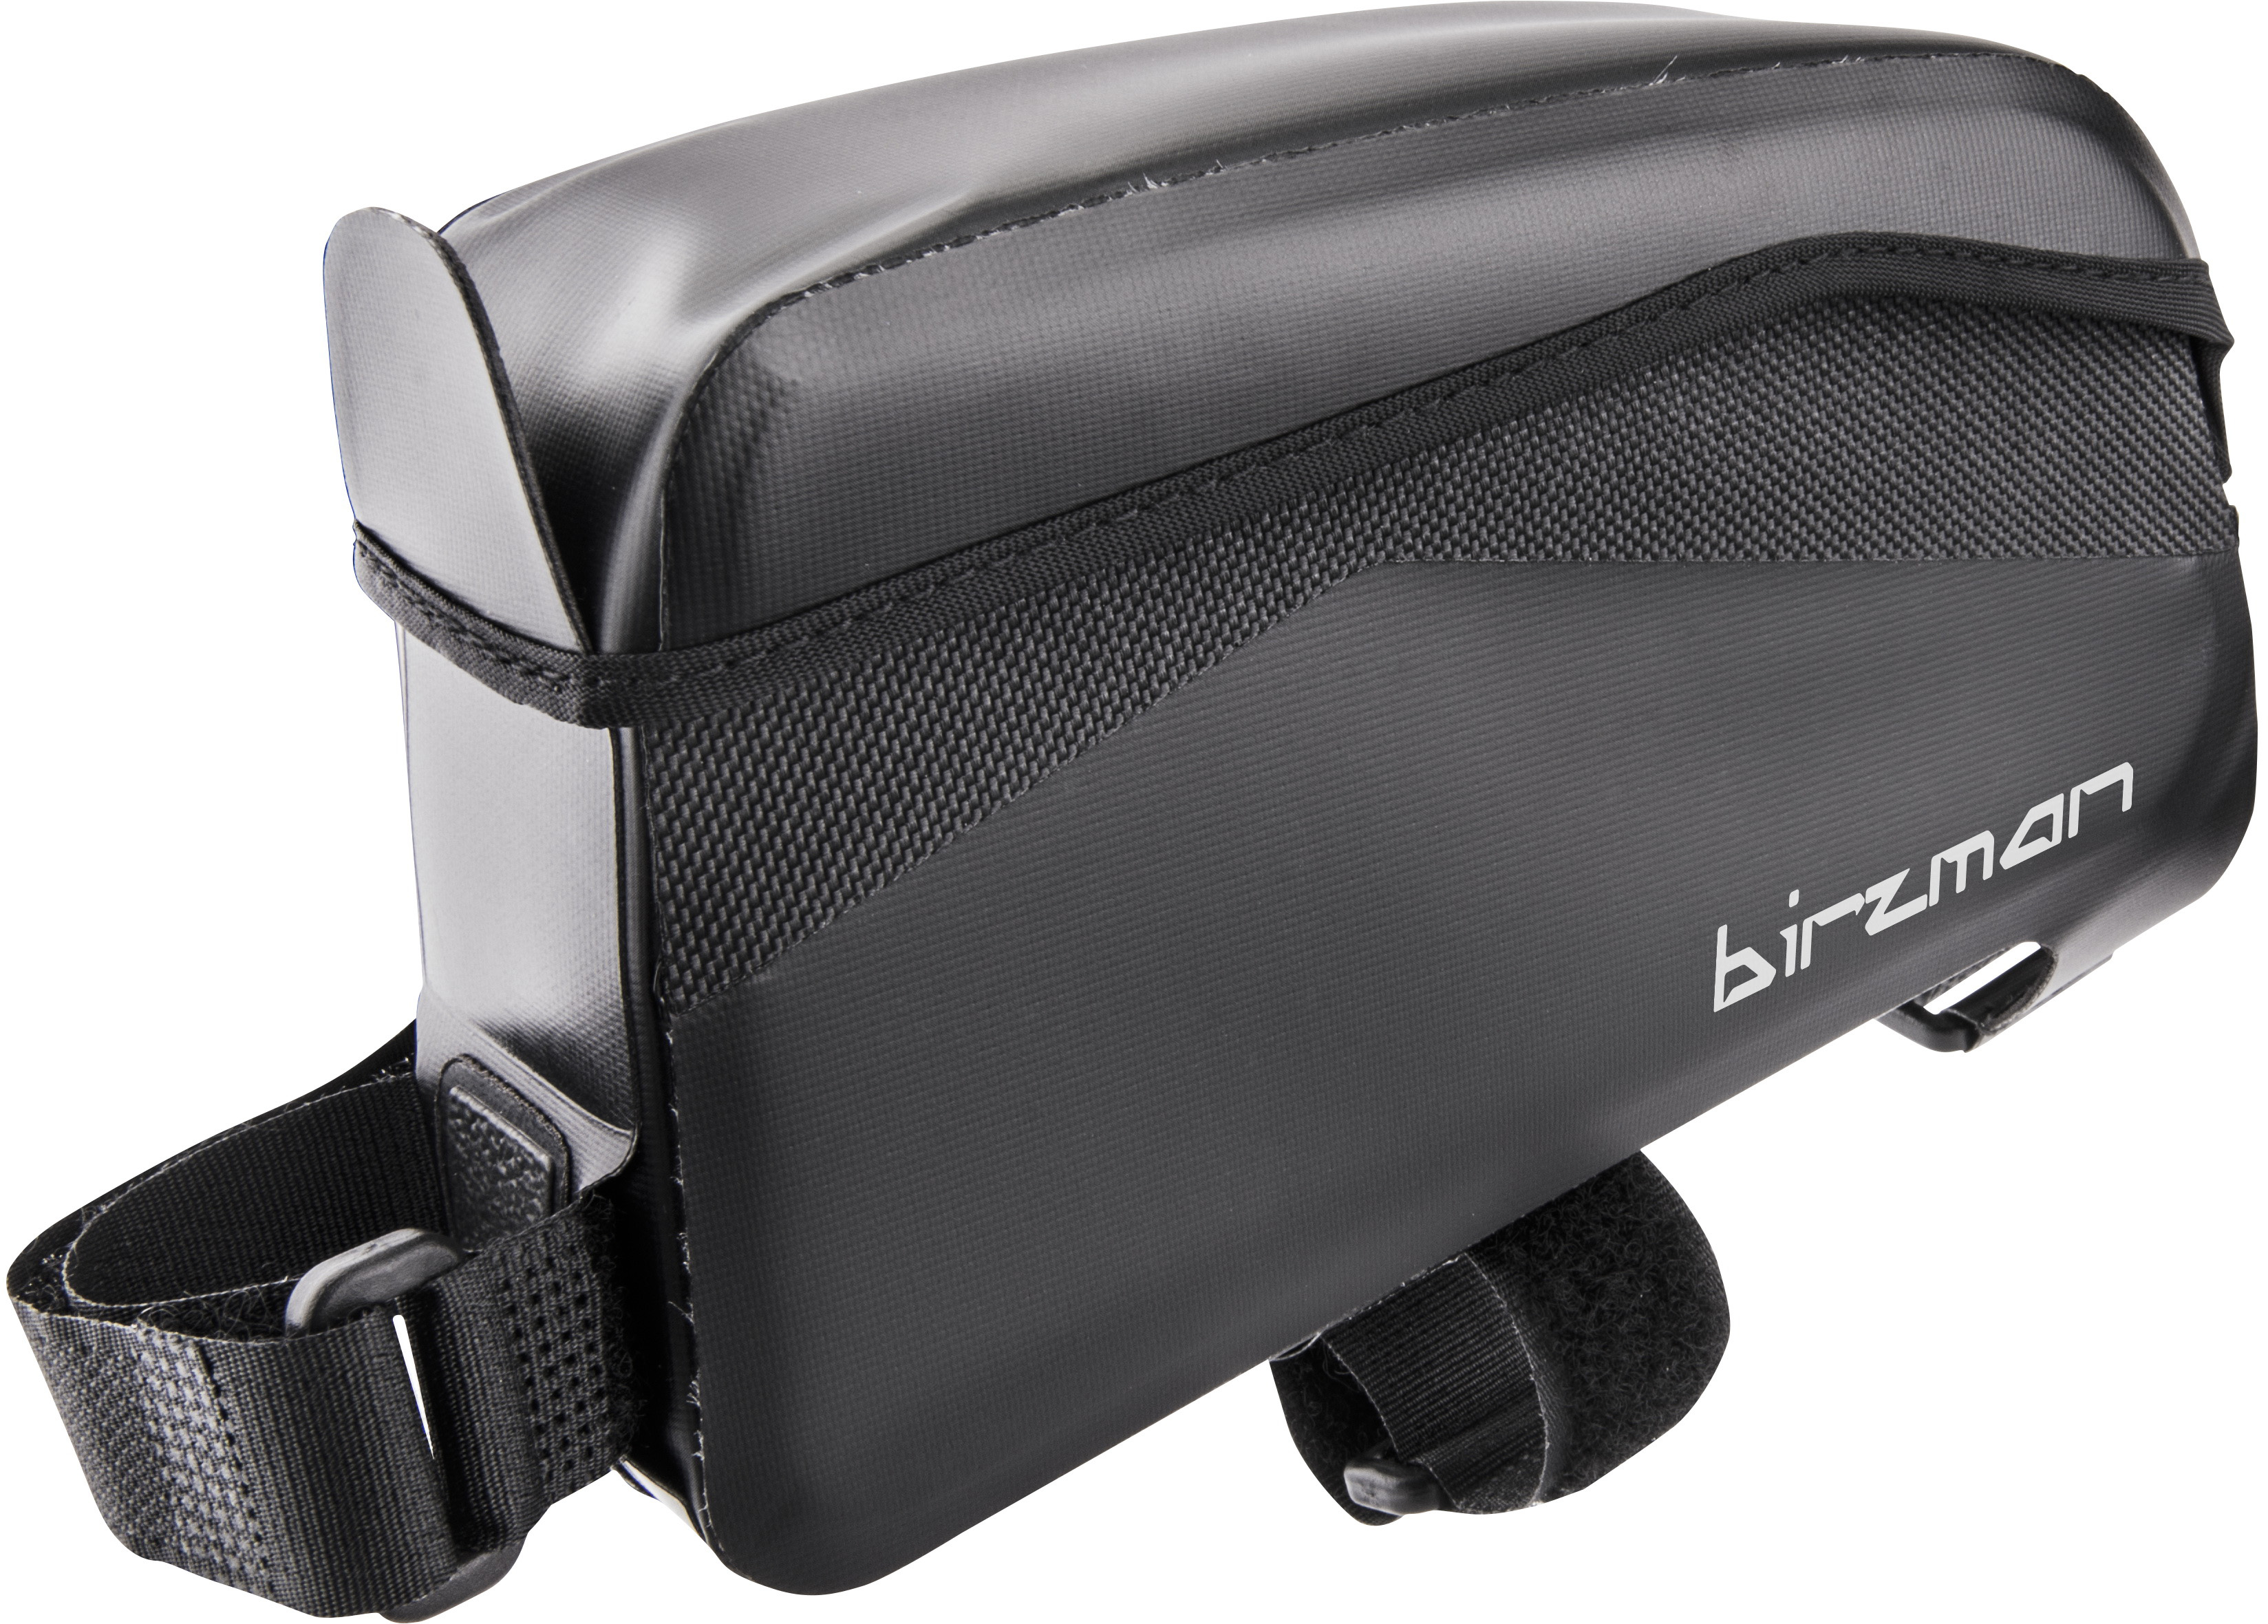 Birzman Belly R Top Tube Bag | Frame bags